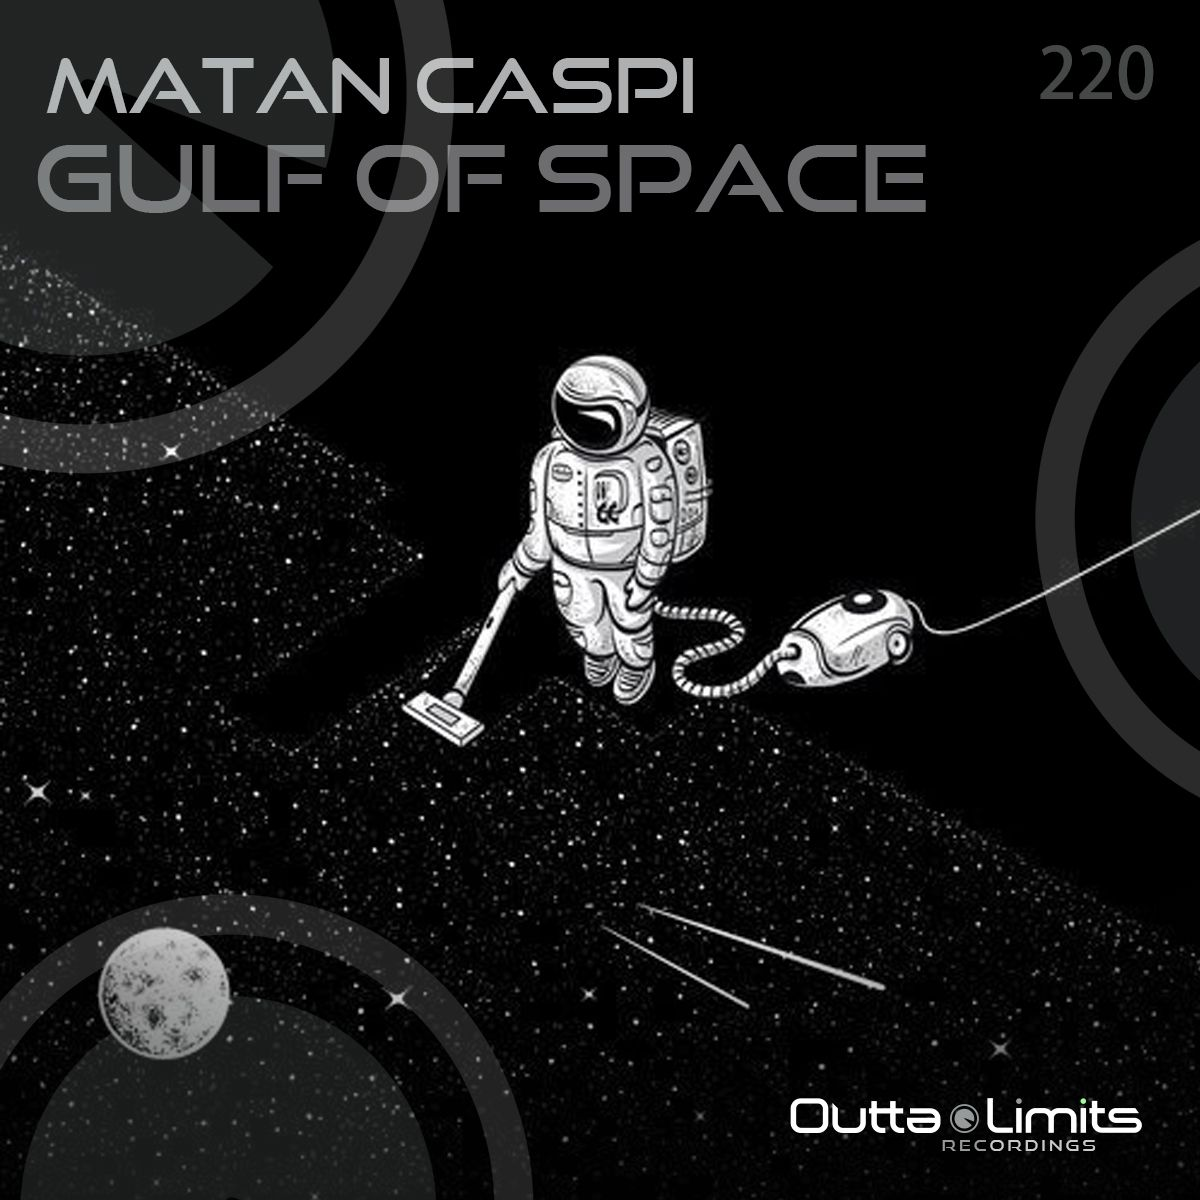 gulf_of_space_cover.jpg